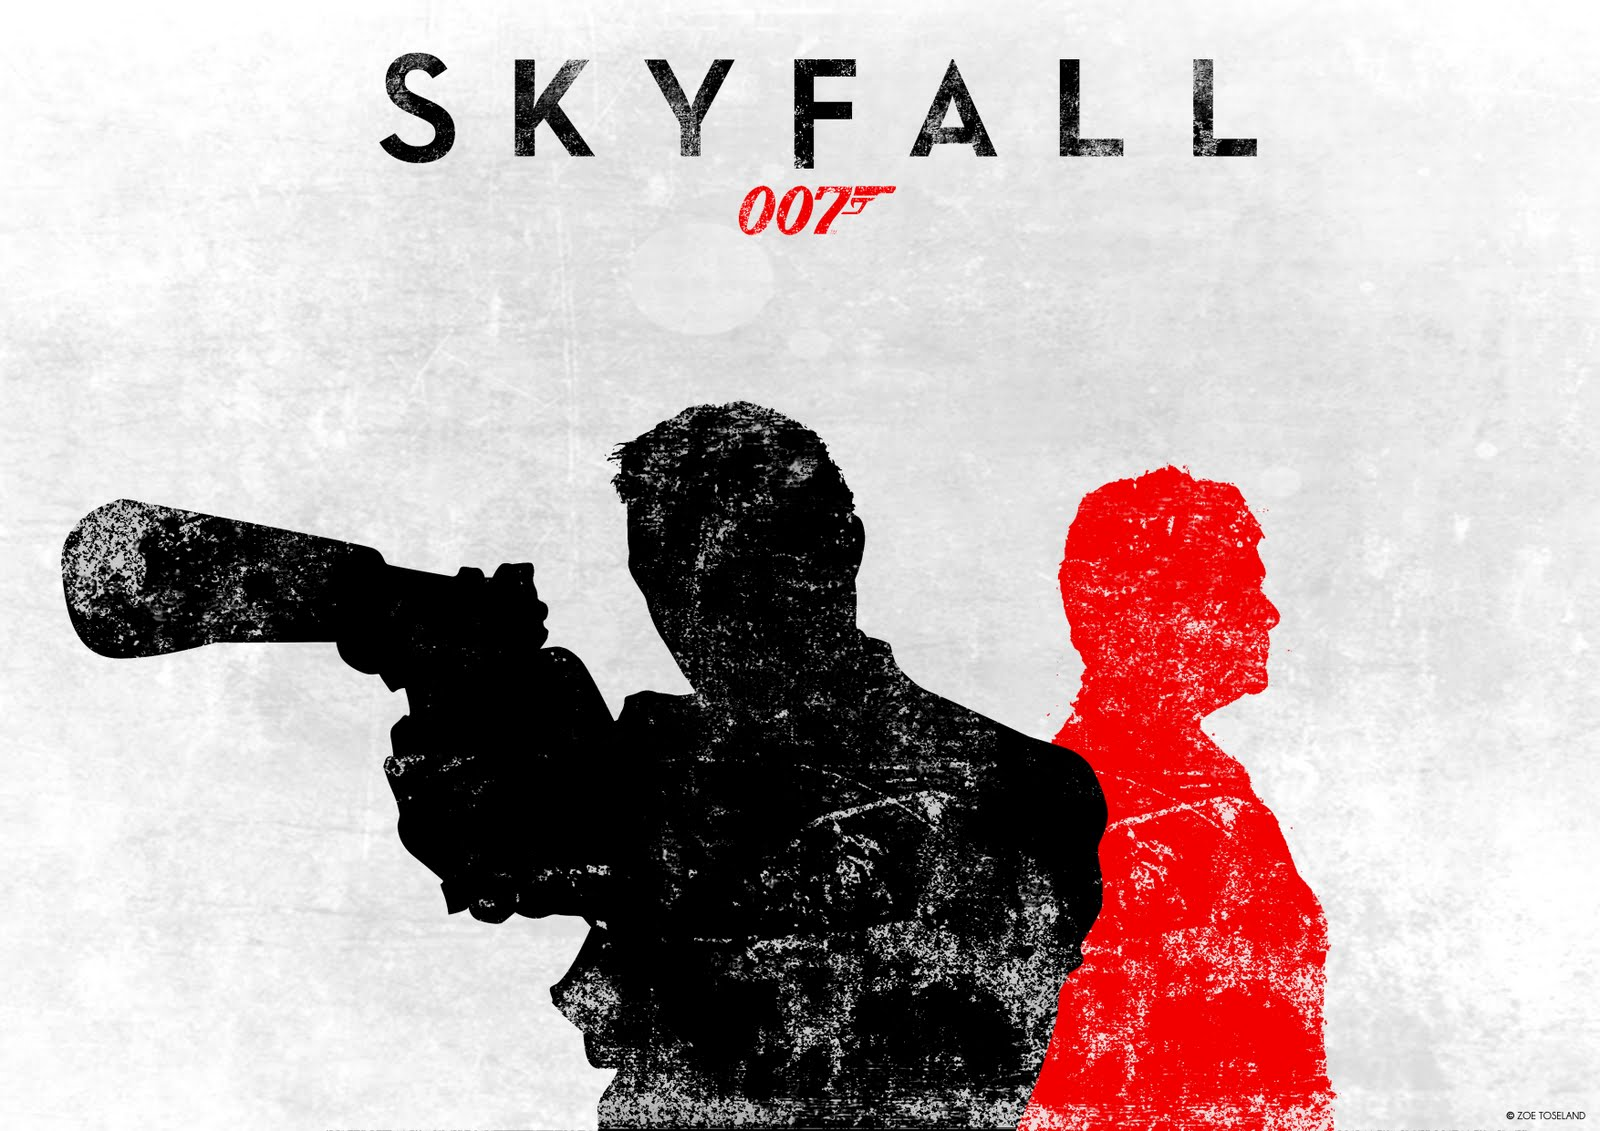 hd wallpapers for iphone 5 james bond 007 skyfall